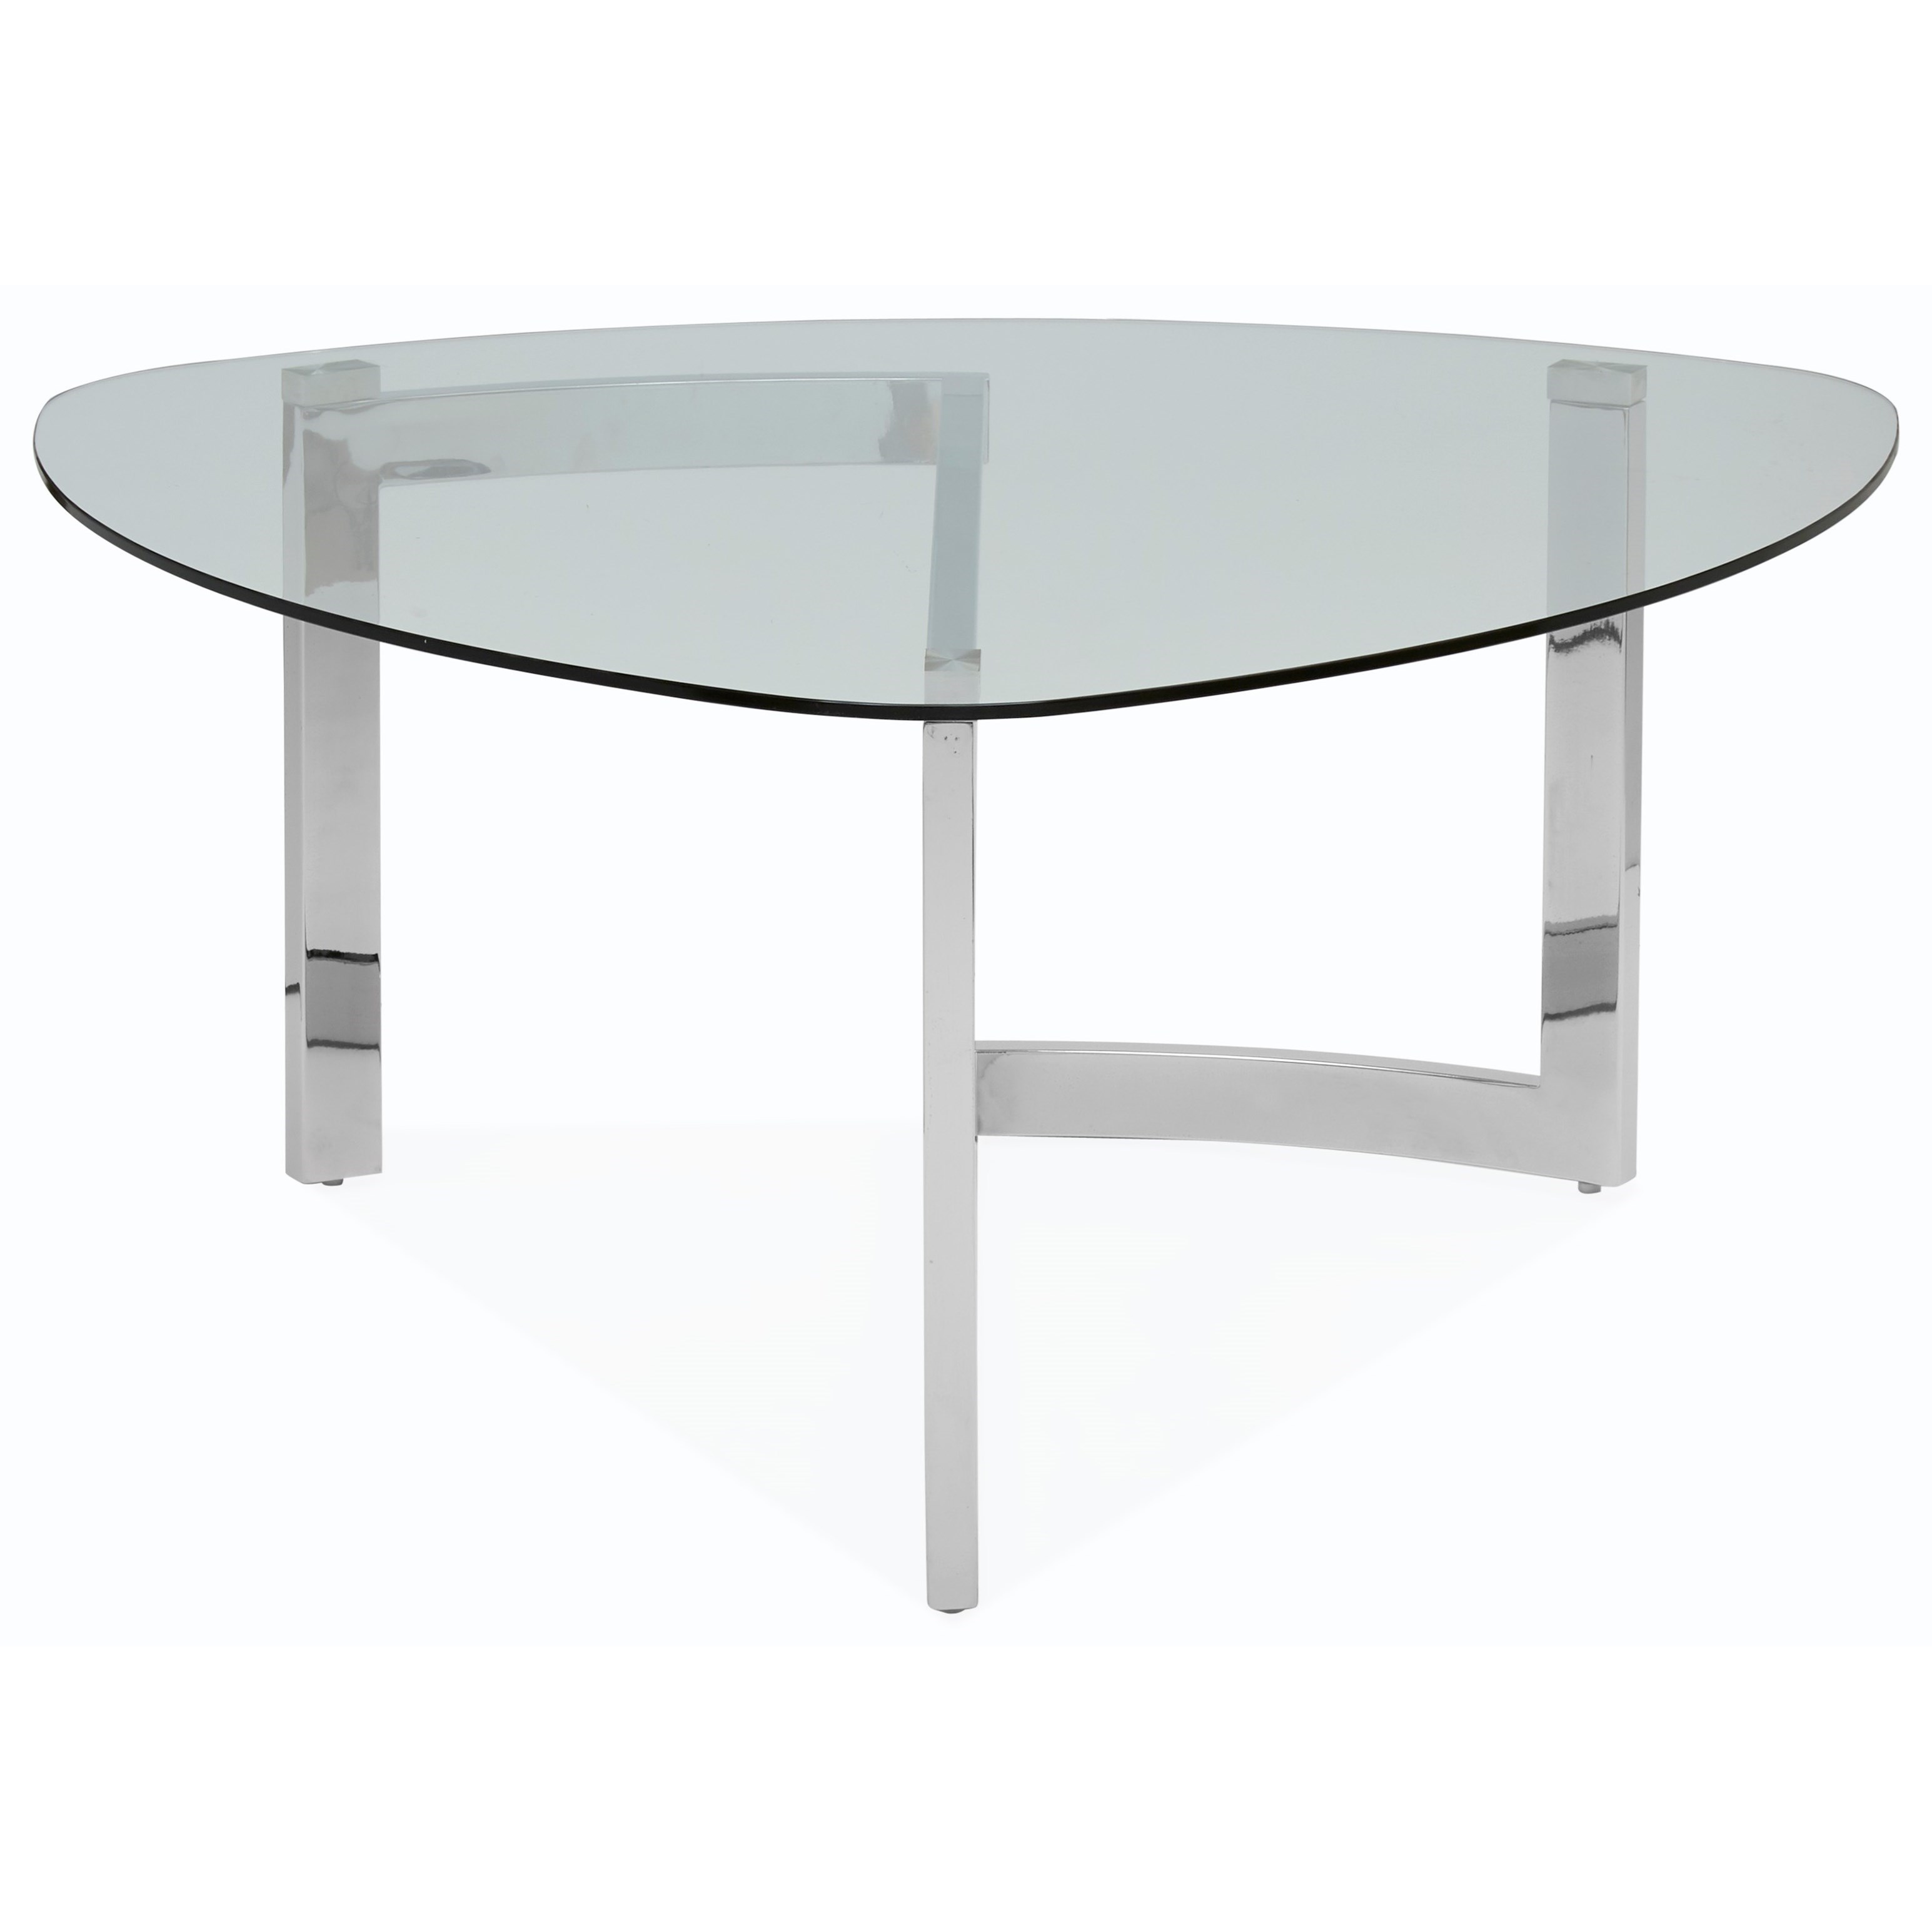 Aries Shaped Cocktail Table by Magnussen Home at Baer's Furniture